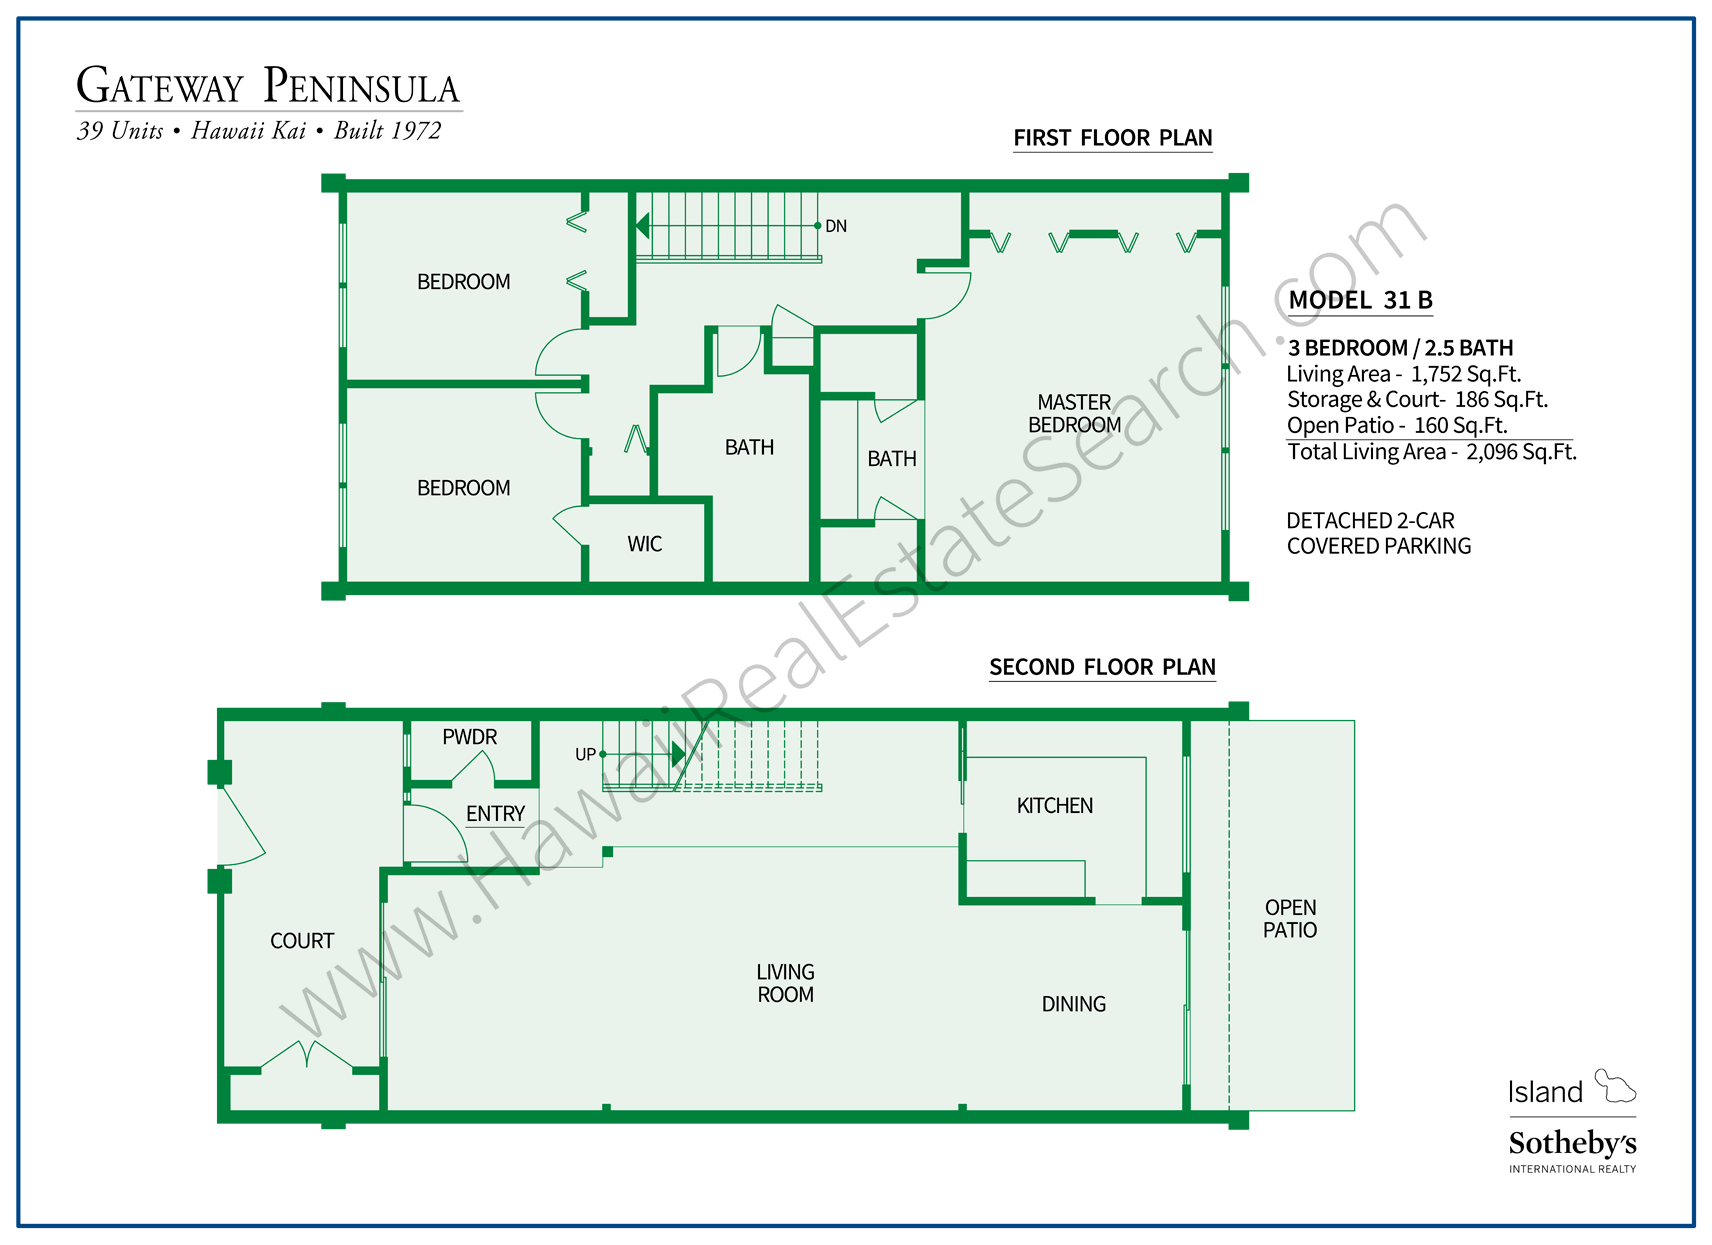 Gateway Peninsula Floor Plan 31B